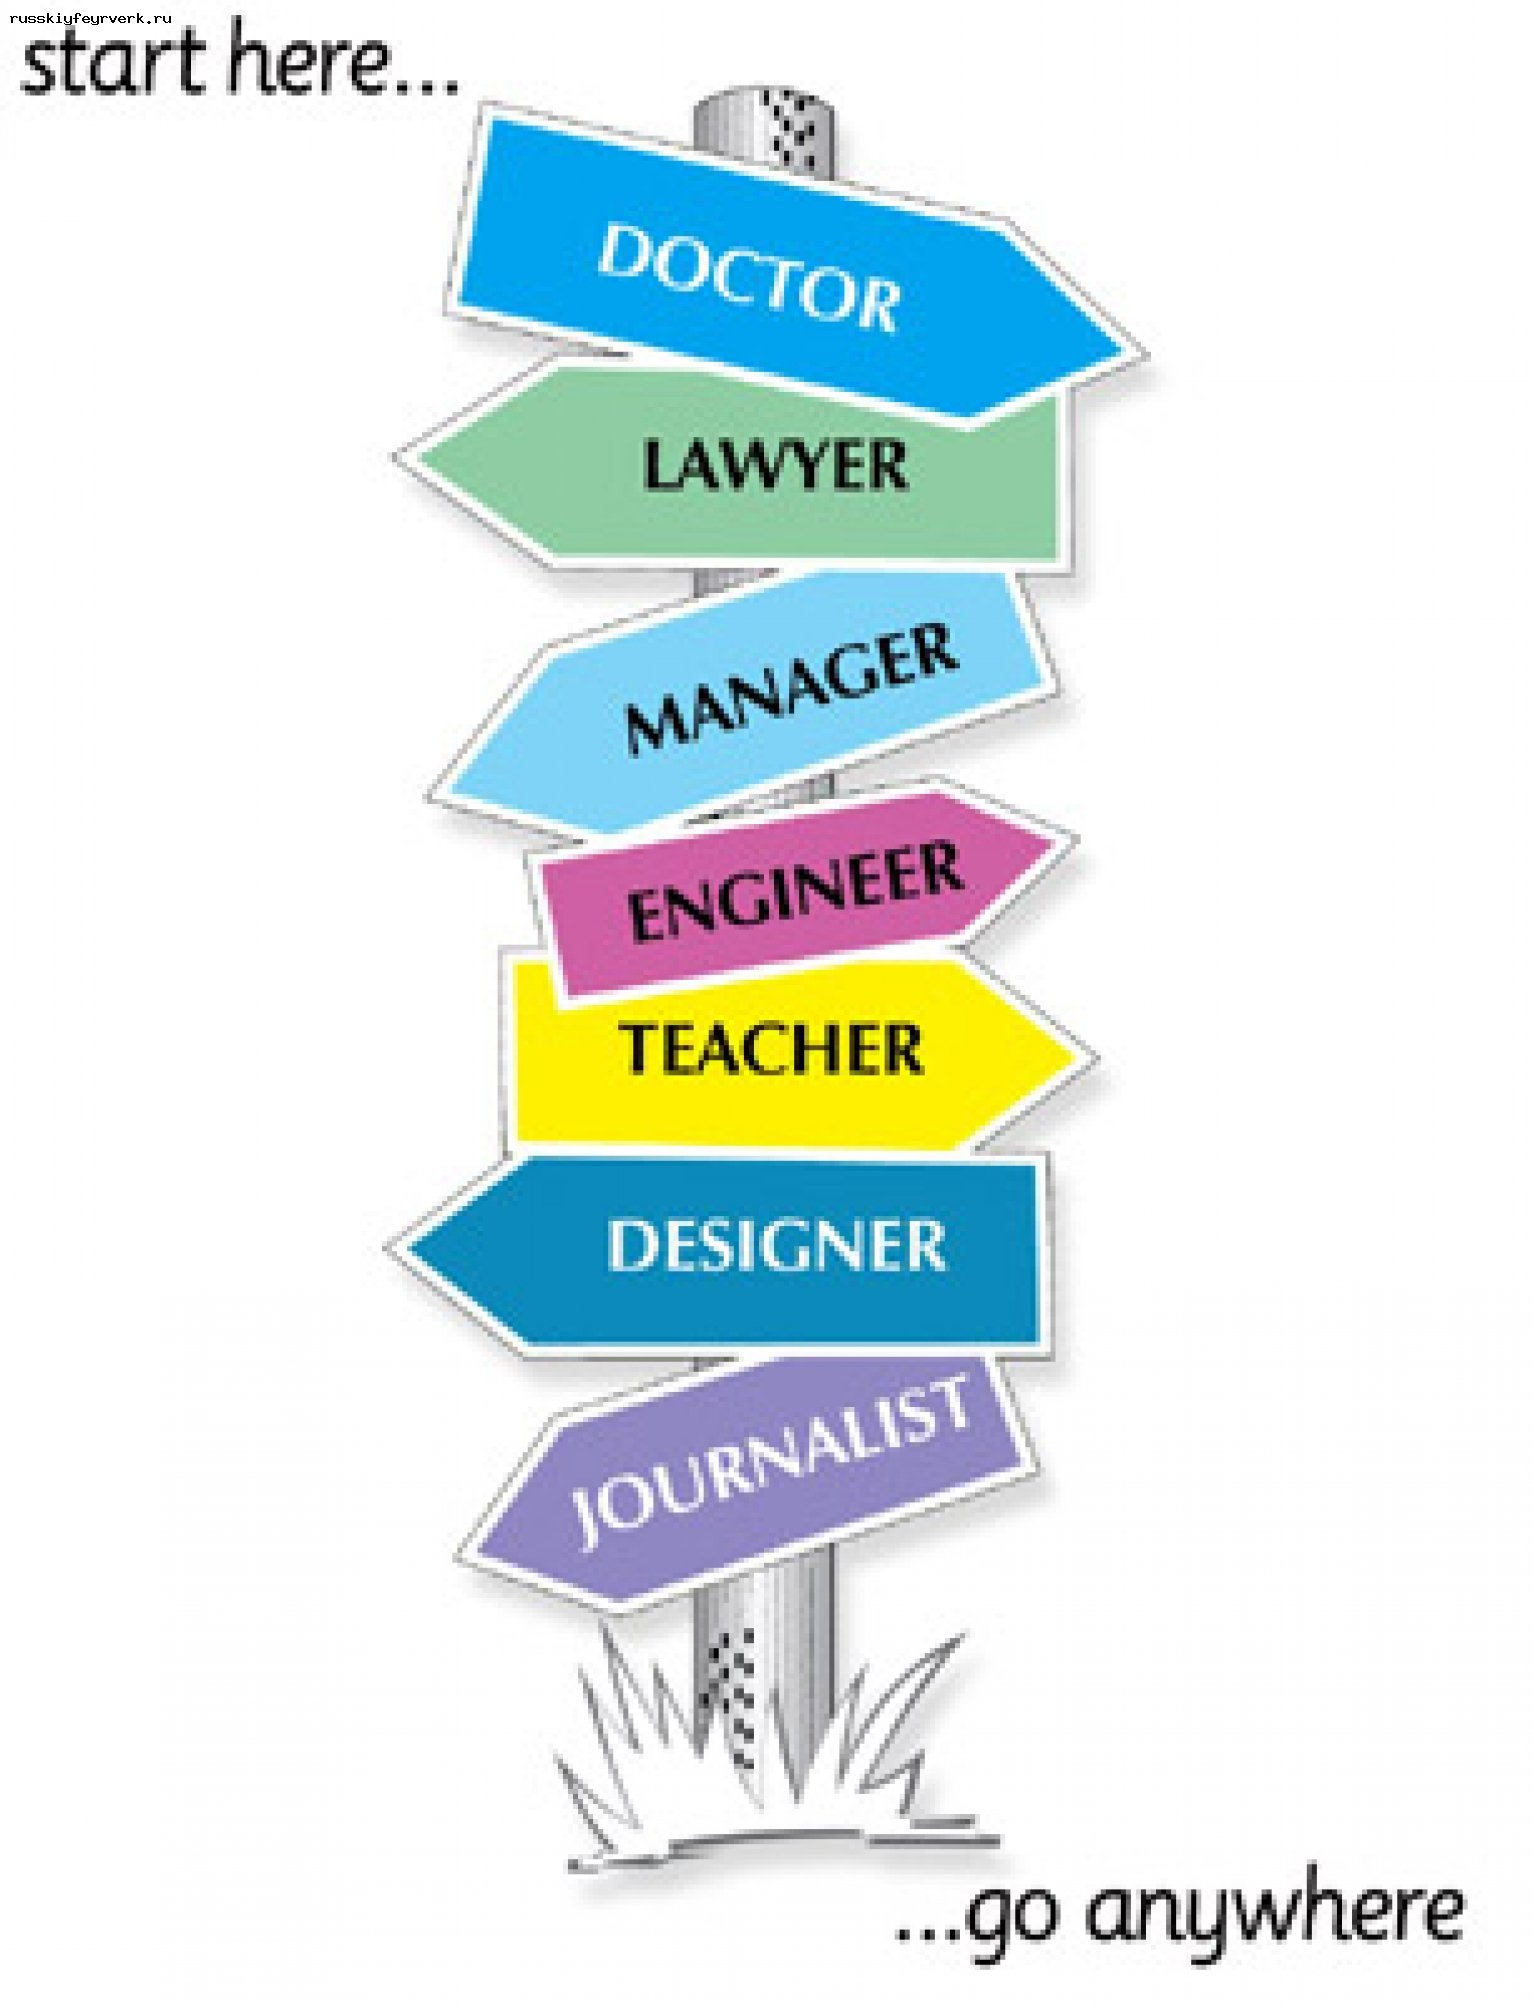 Career pathways clipart jpg transparent library 11/7/16-11/10/111 - Coast Redwood High School jpg transparent library